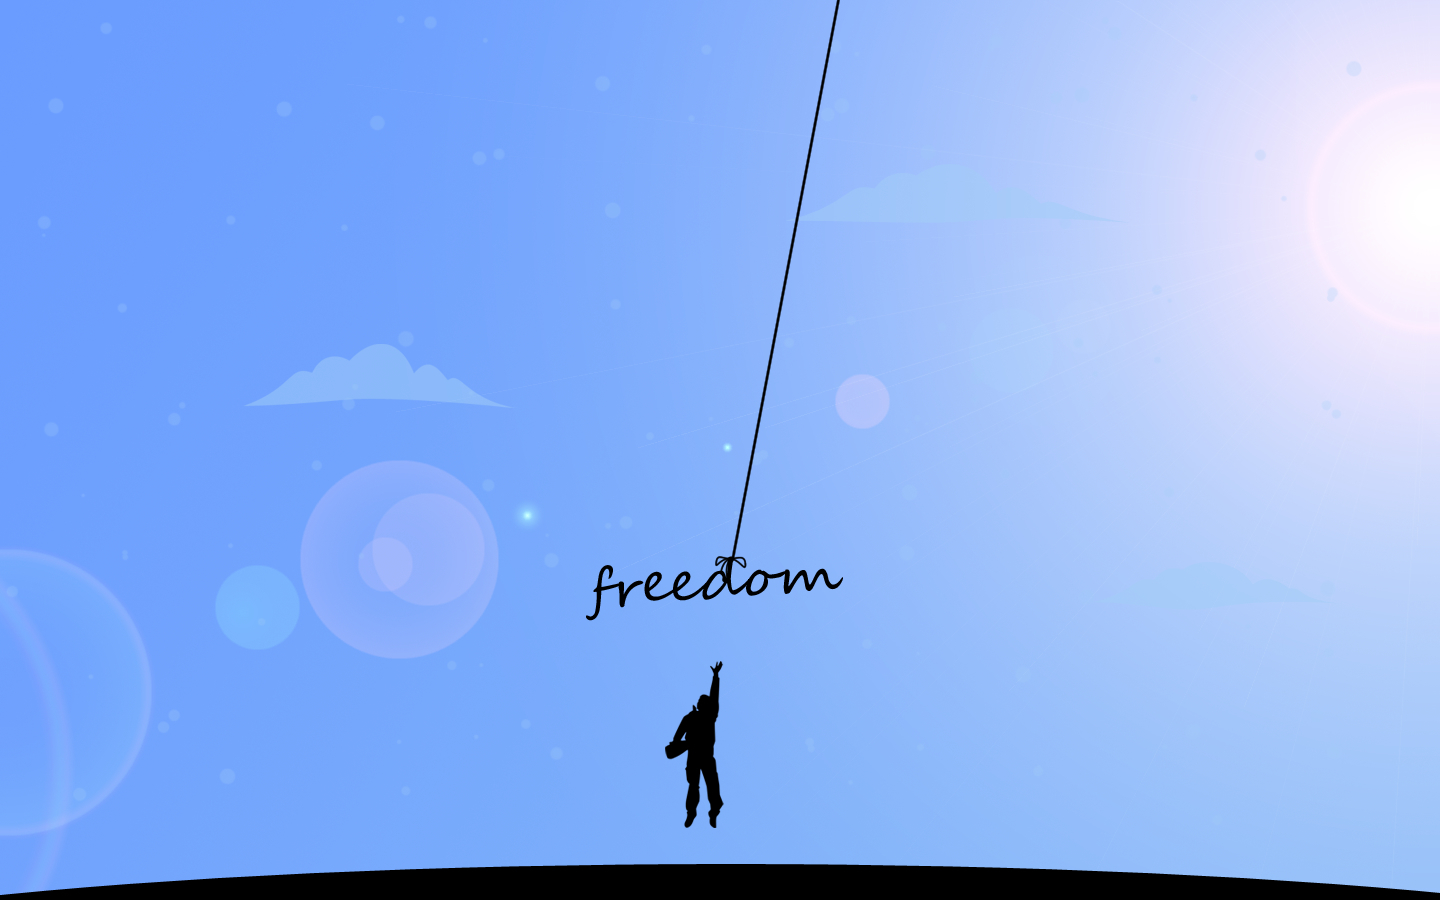 abstract blue freedom minimalistic HD Wallpaper